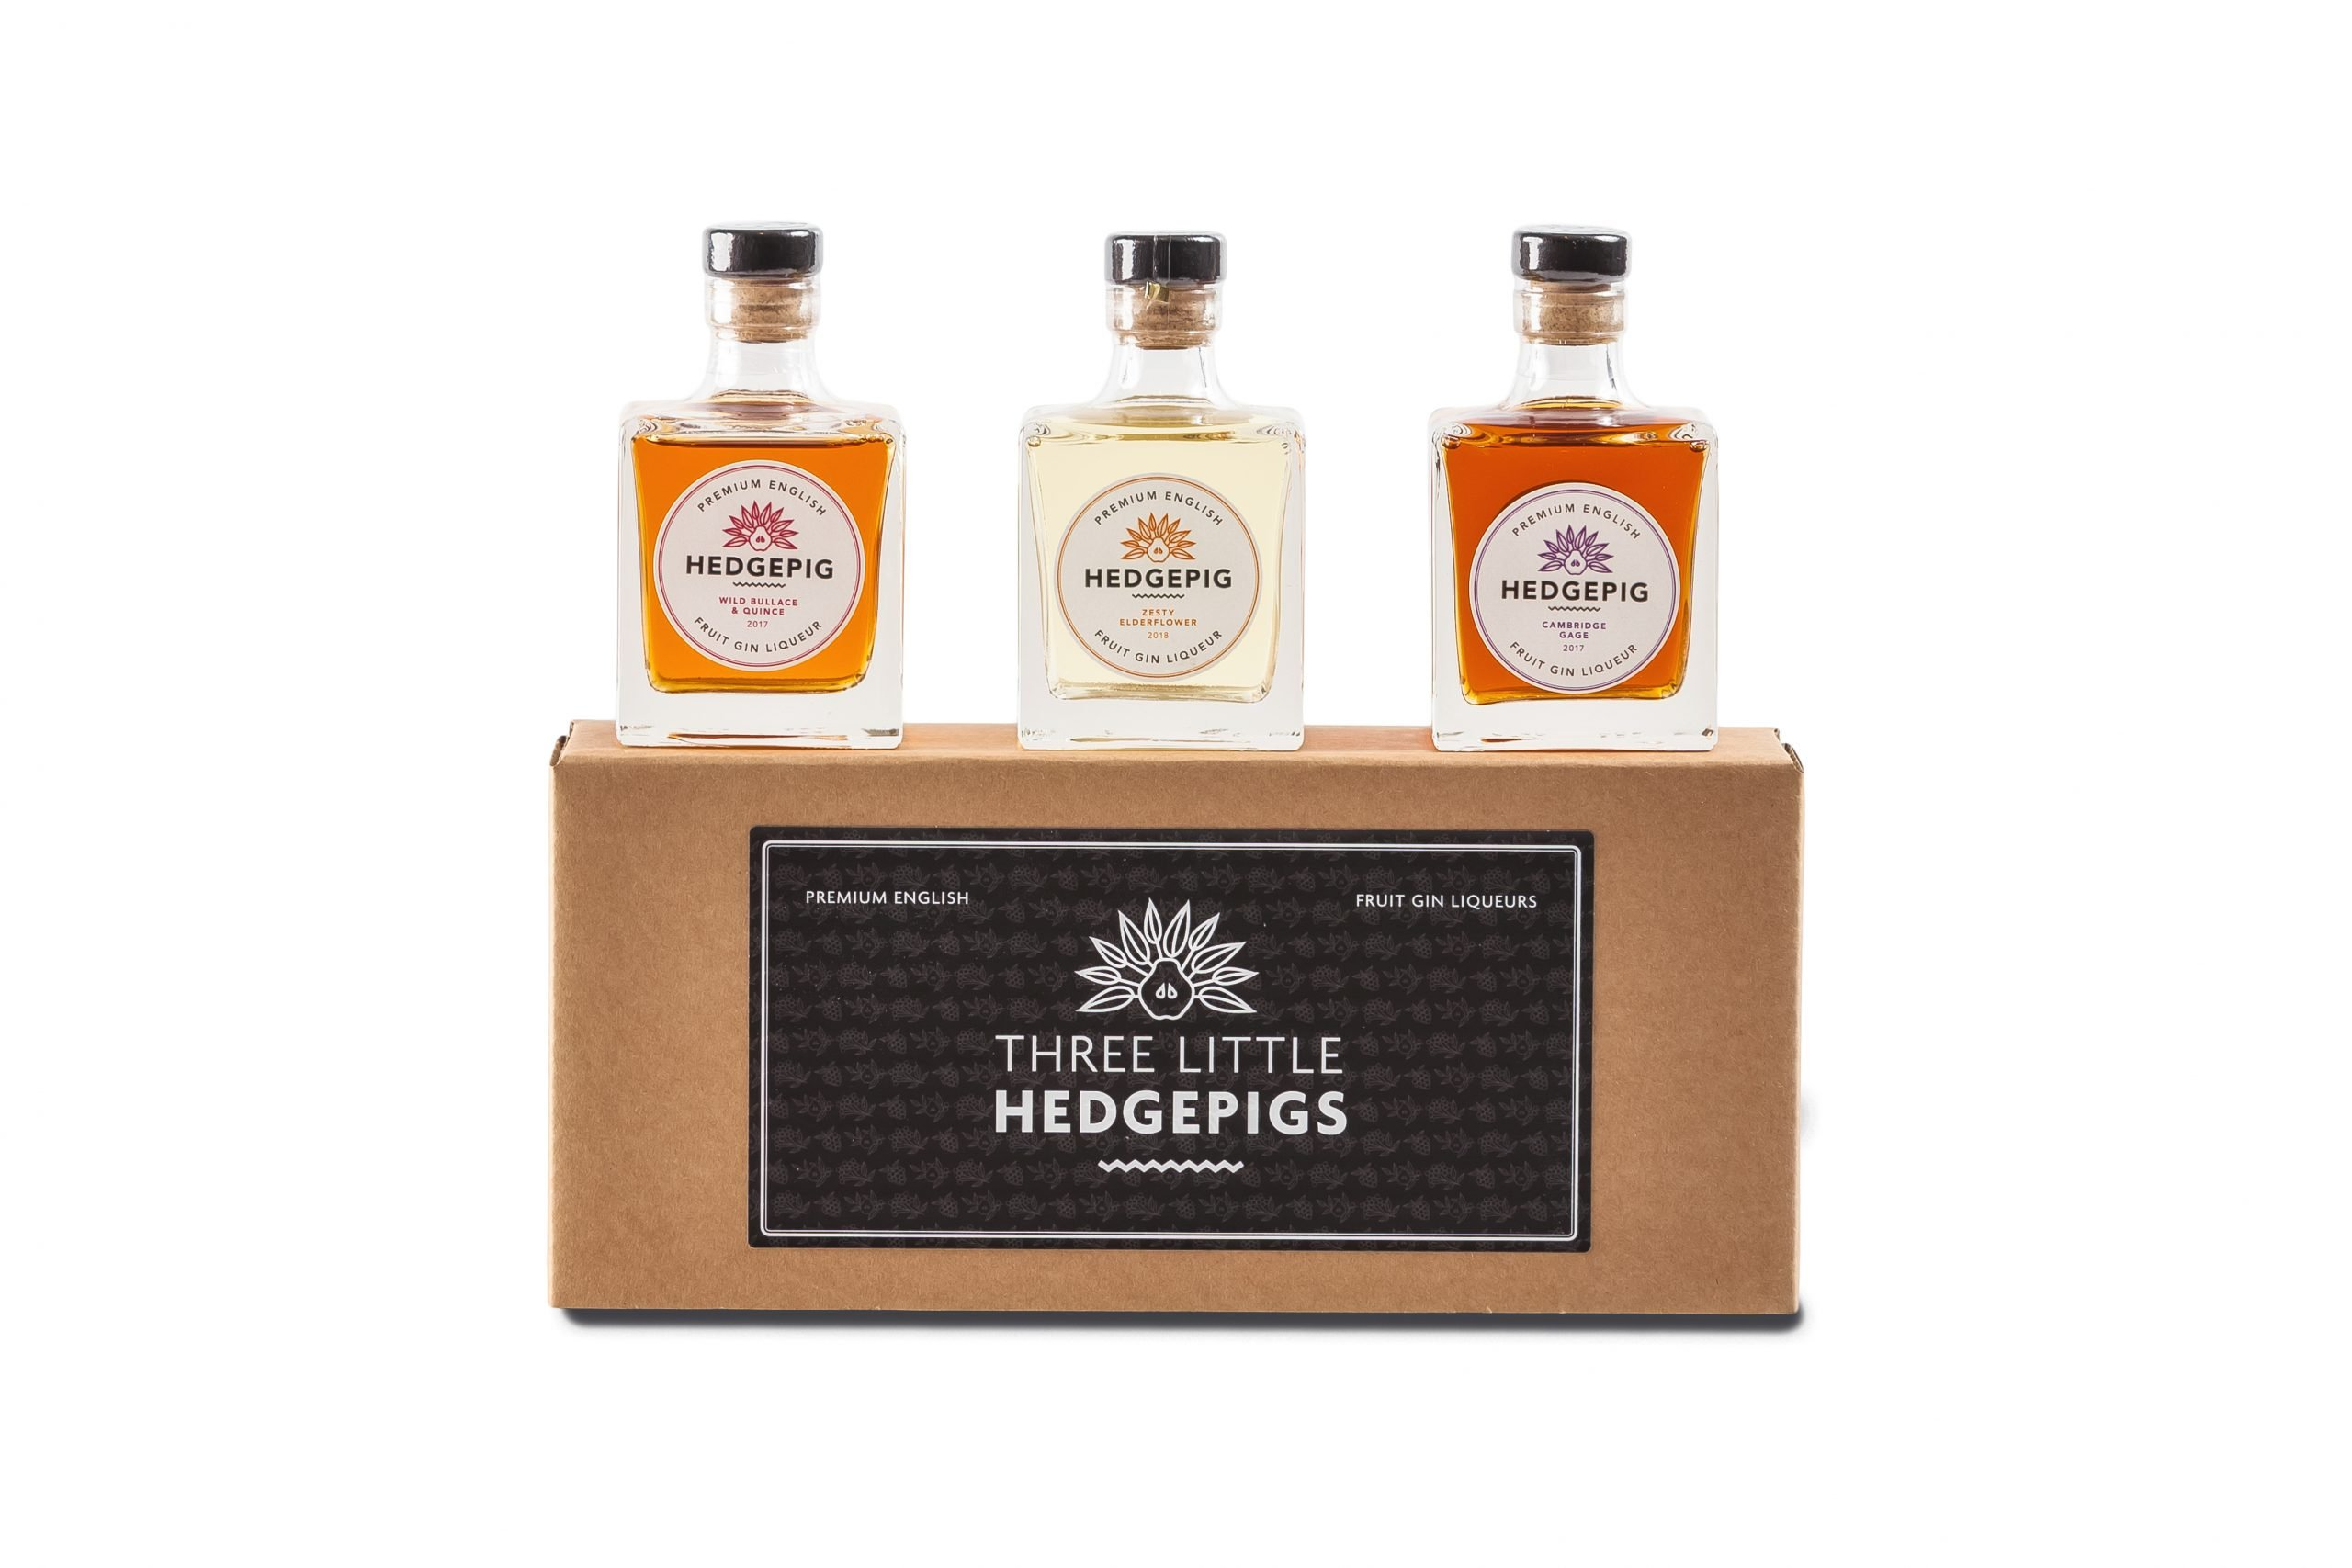 Three Little Hedgepigs Boxed Gift Set